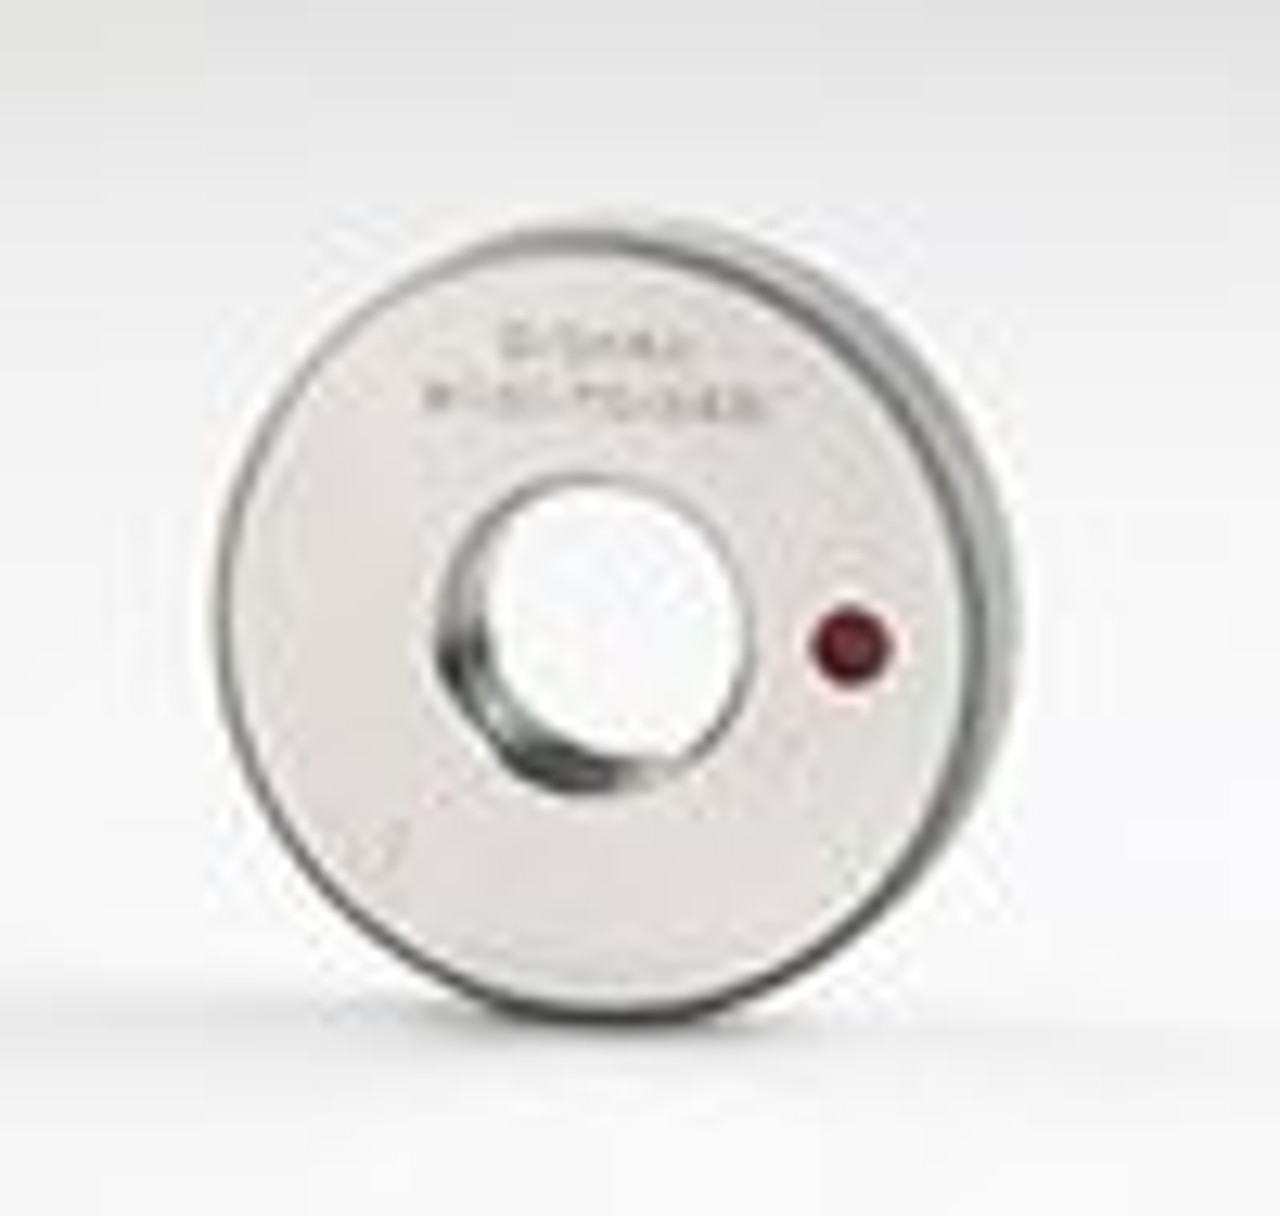 """BSW 1/2"""" - 12 NO GO Thread Ring Gauge - (BSW1/2RG-NG)"""